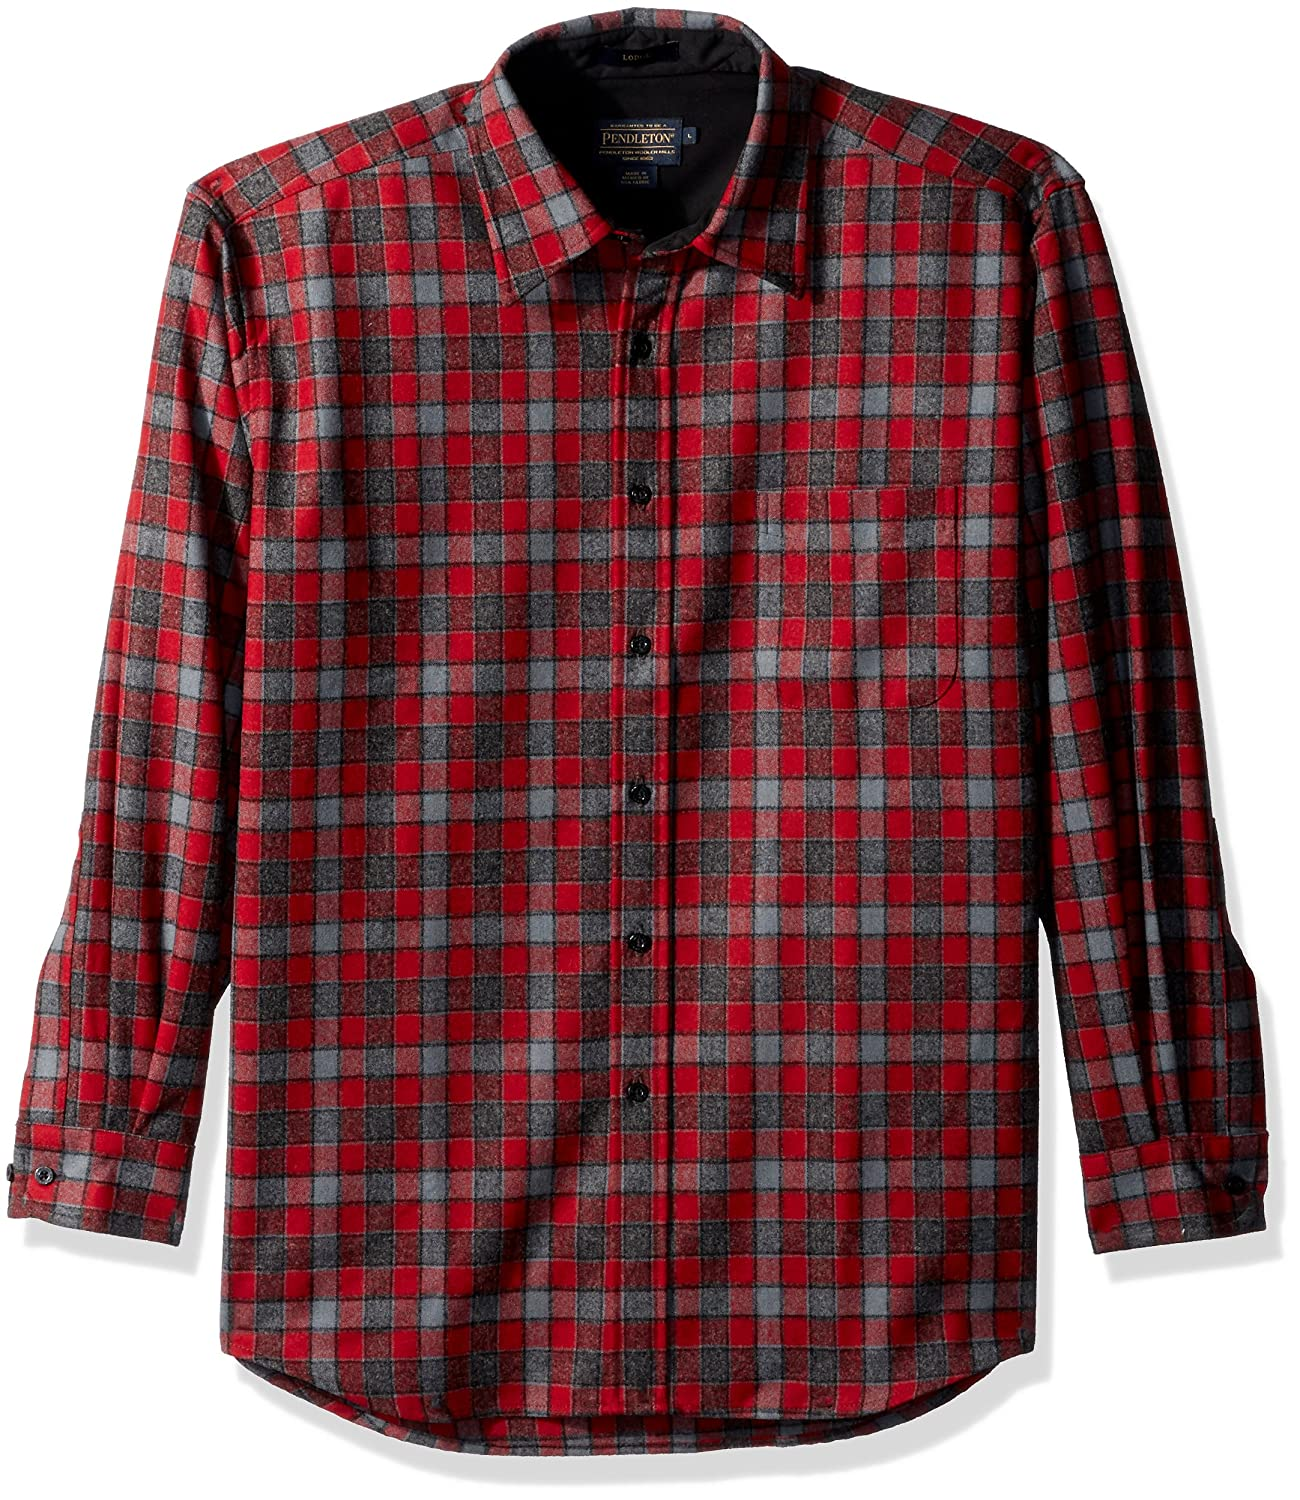 Pendleton SHIRT メンズ B01N5WFZJU M|Grey/Red Check-31963 Grey/Red Check-31963 M